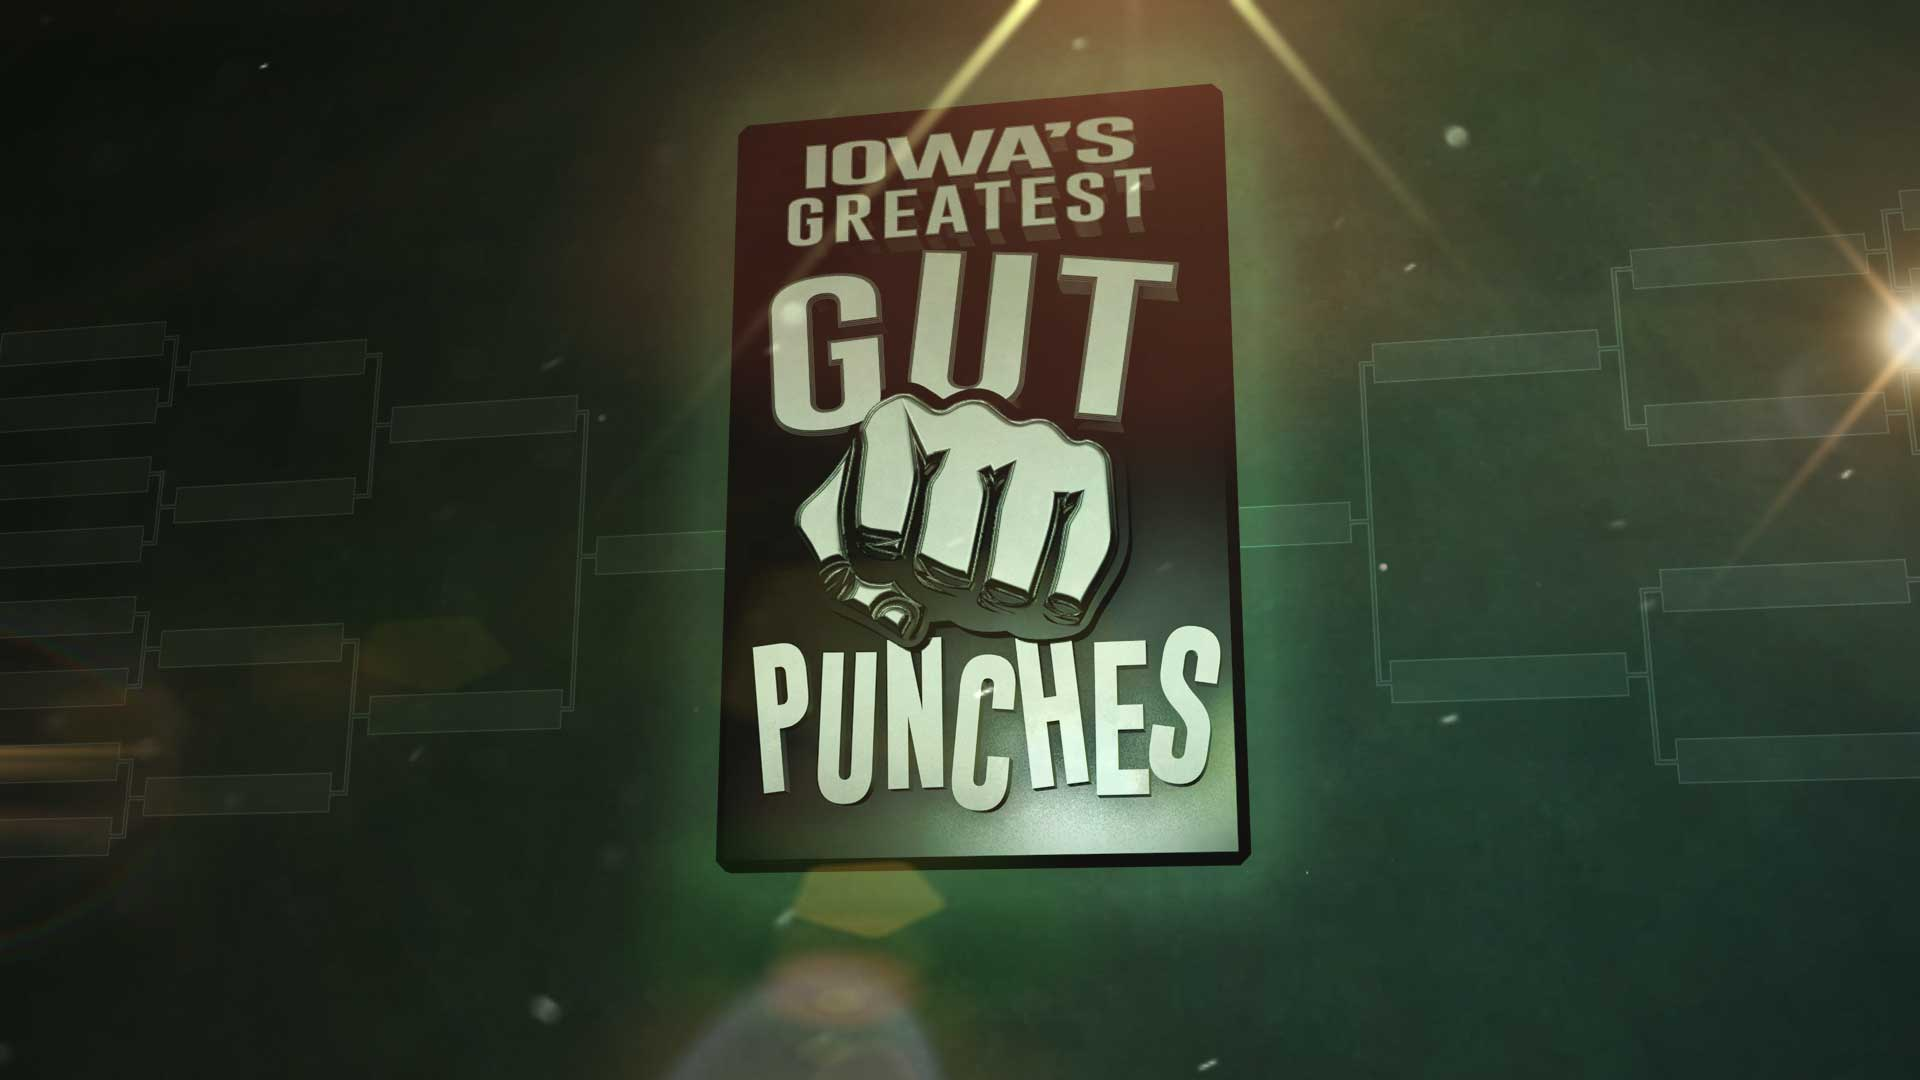 Iowa's Greatest Gut Punch Moments 5